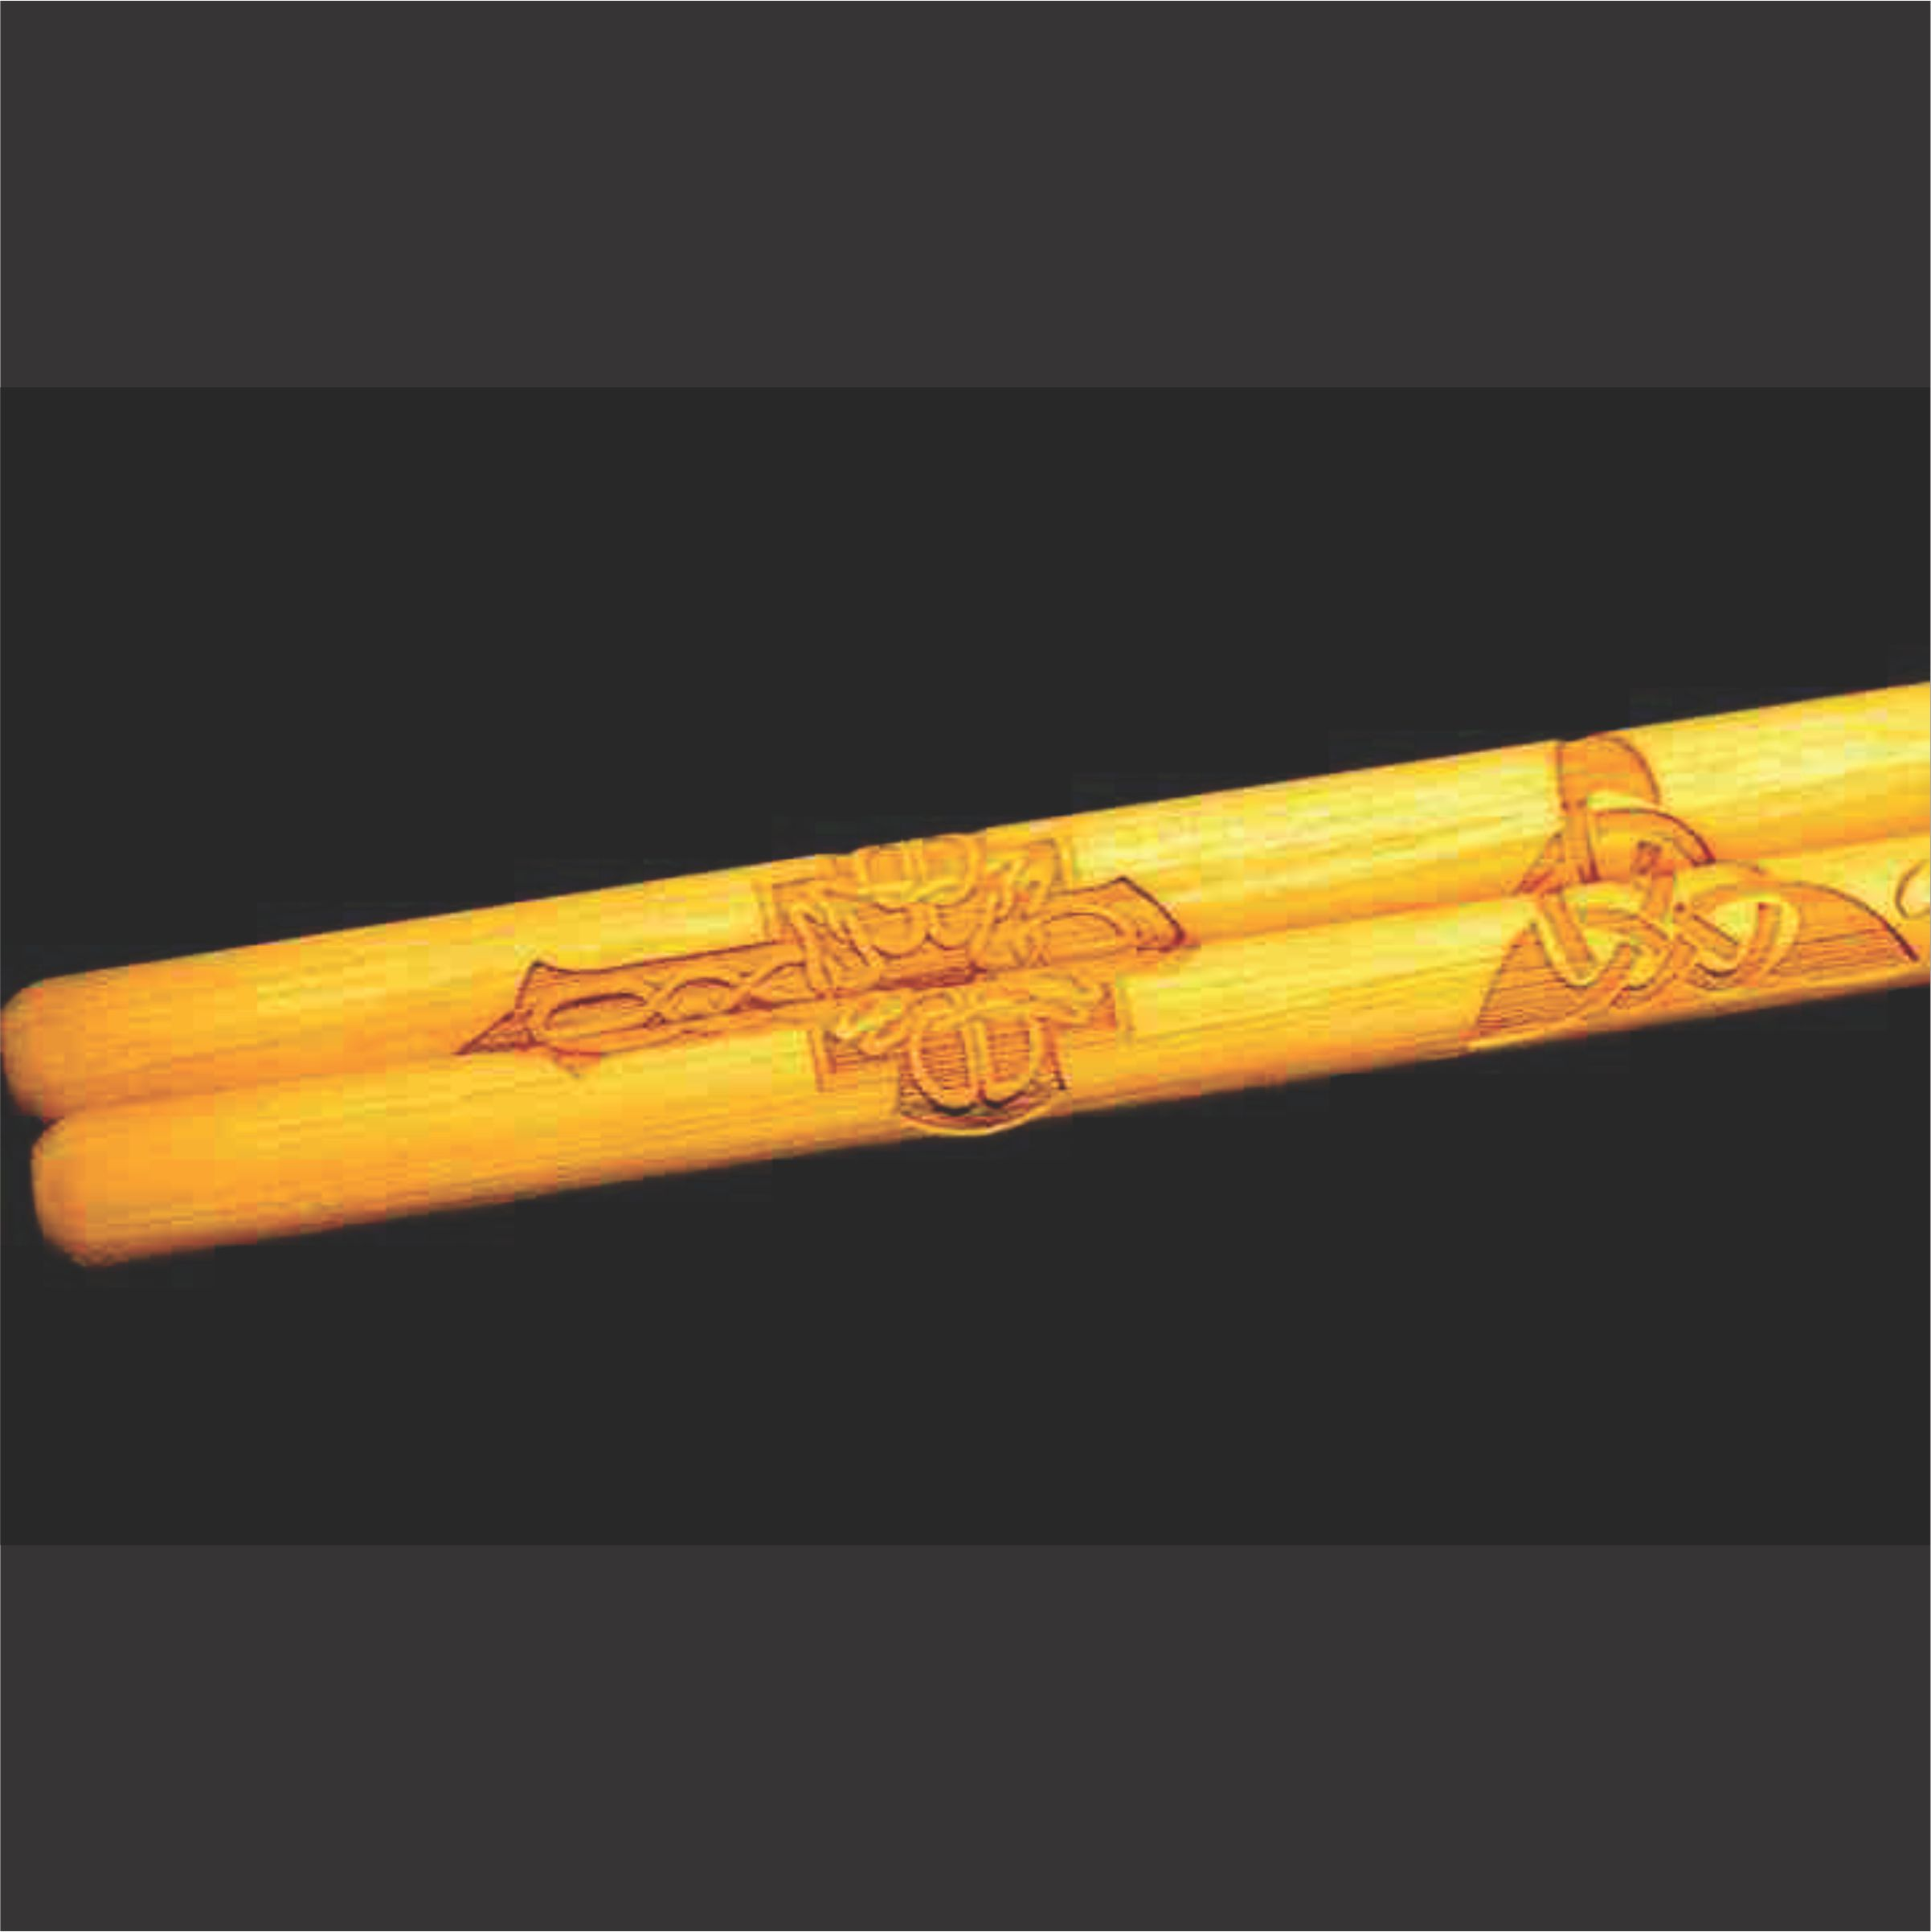 celtic cross and knot design on custom 5A drumsticks